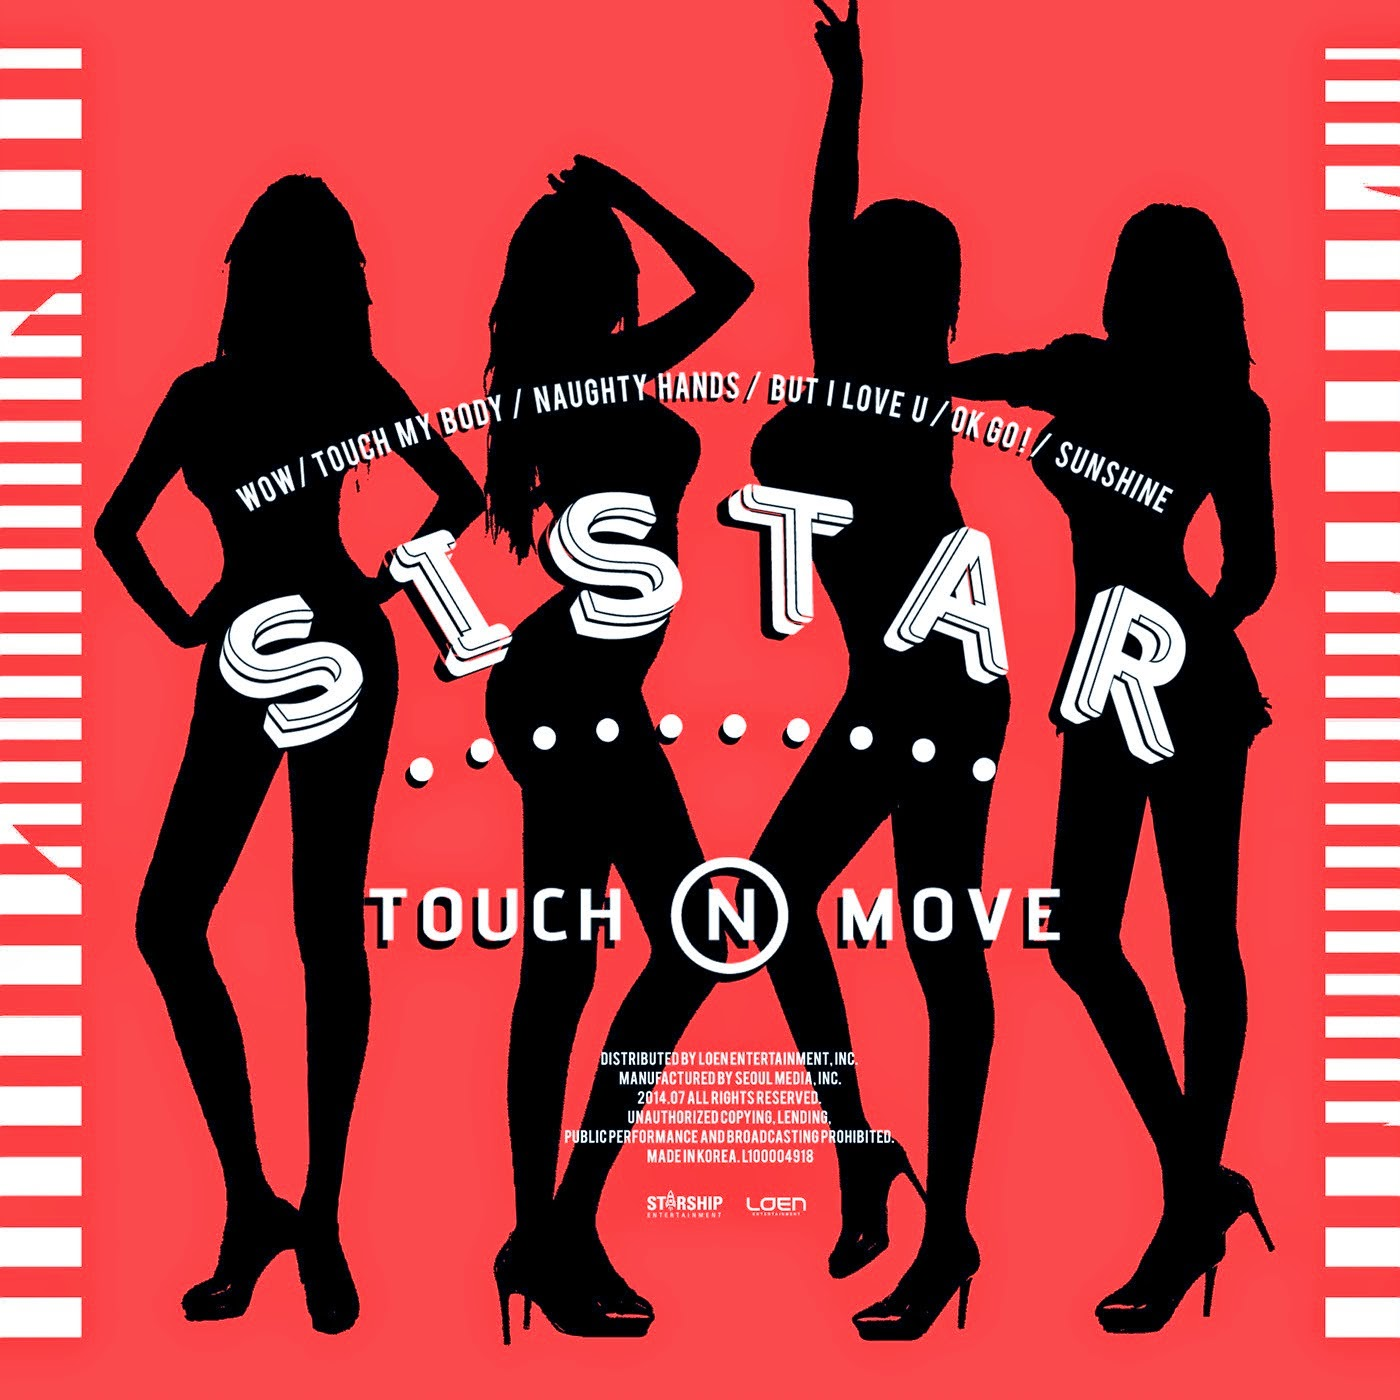 Lirik dan Terjemahan Indonesia Sistar 'WOW' (Intro)  [Hangeul] [Romanisation]